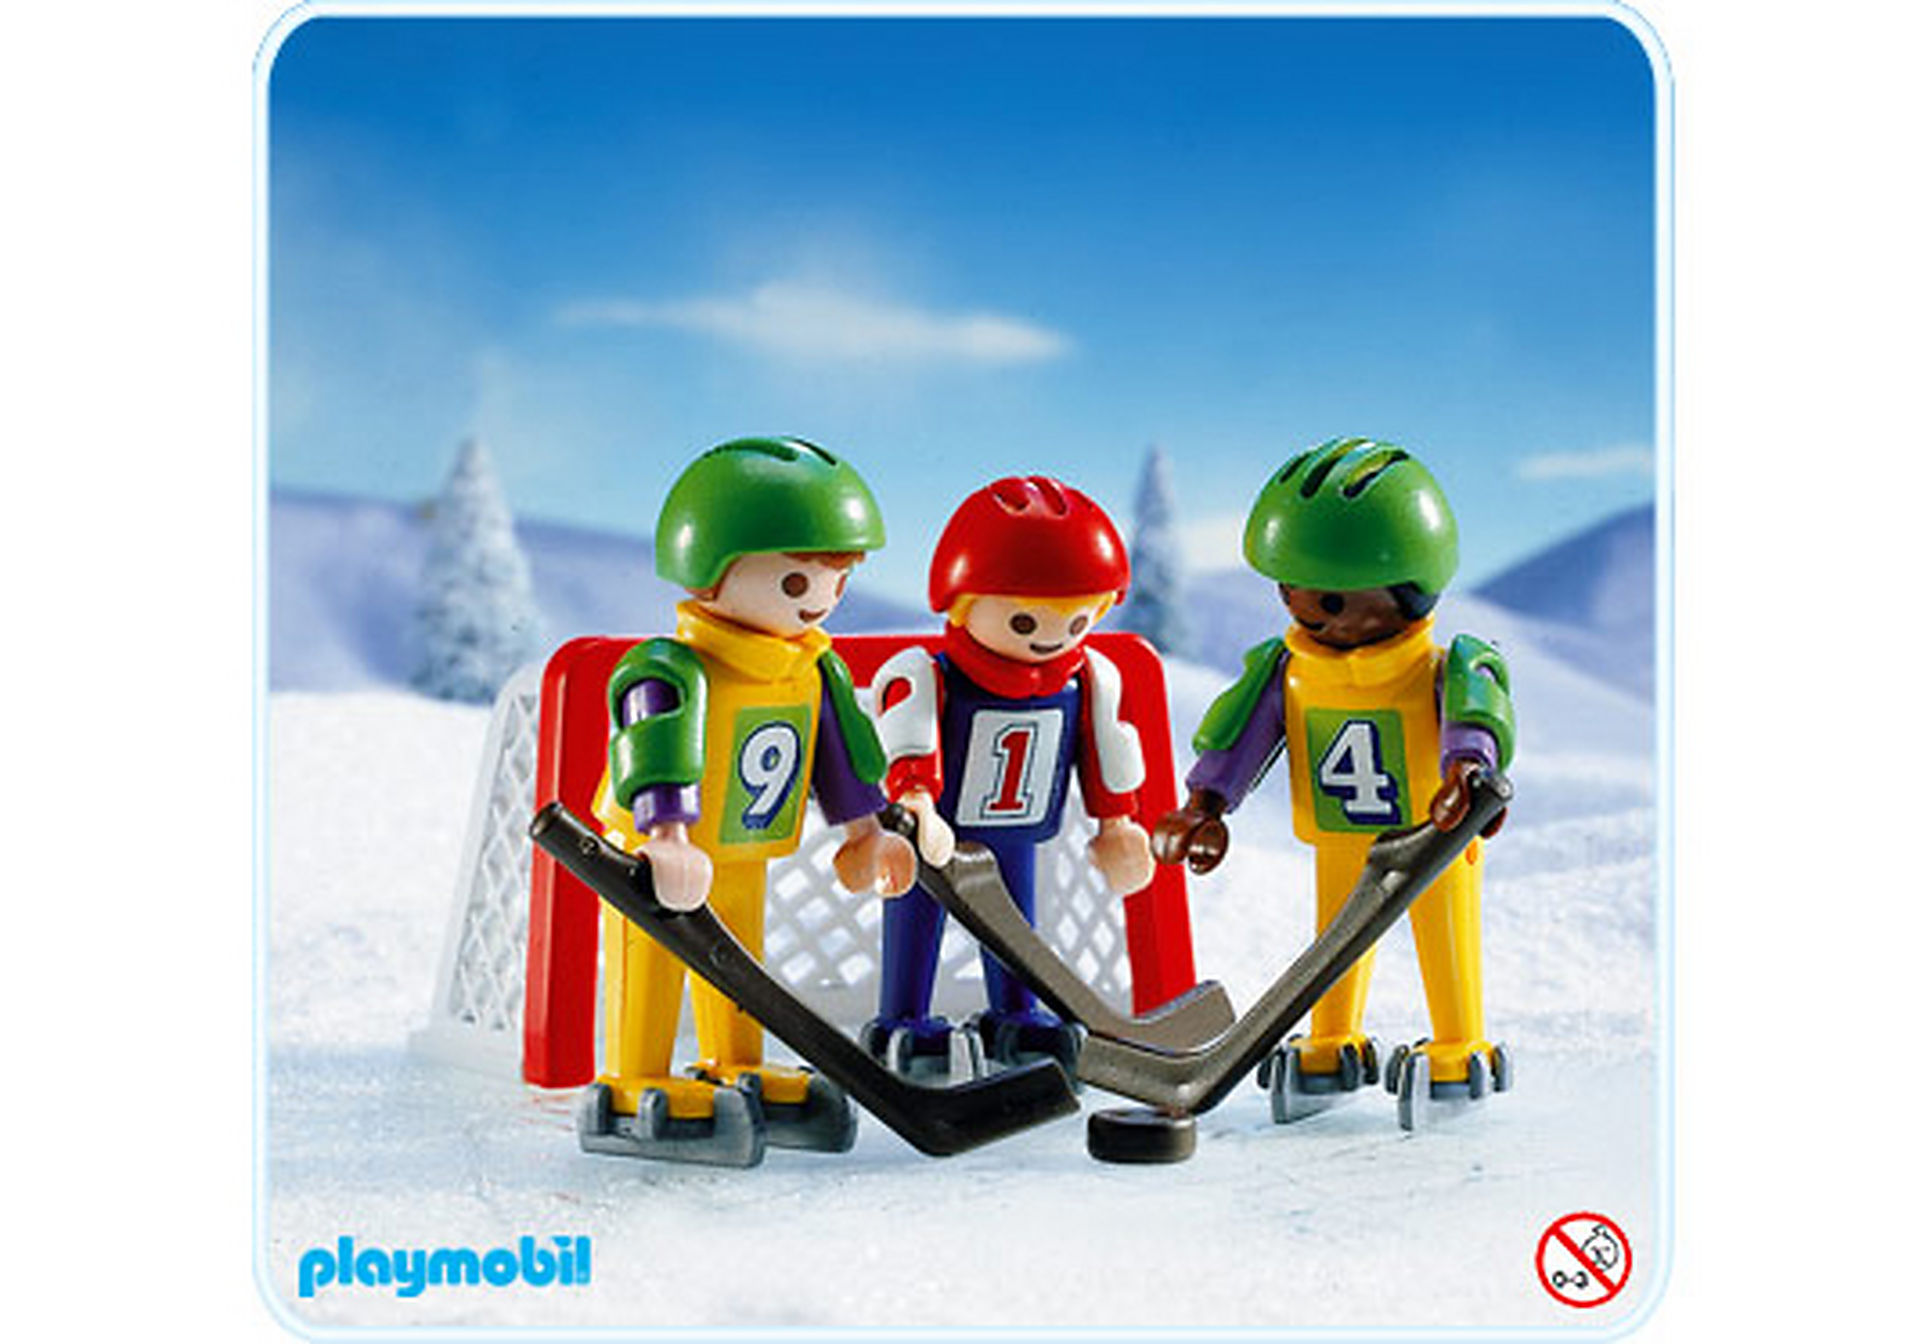 http://media.playmobil.com/i/playmobil/3685-A_product_detail/3 Eishockey-Spieler